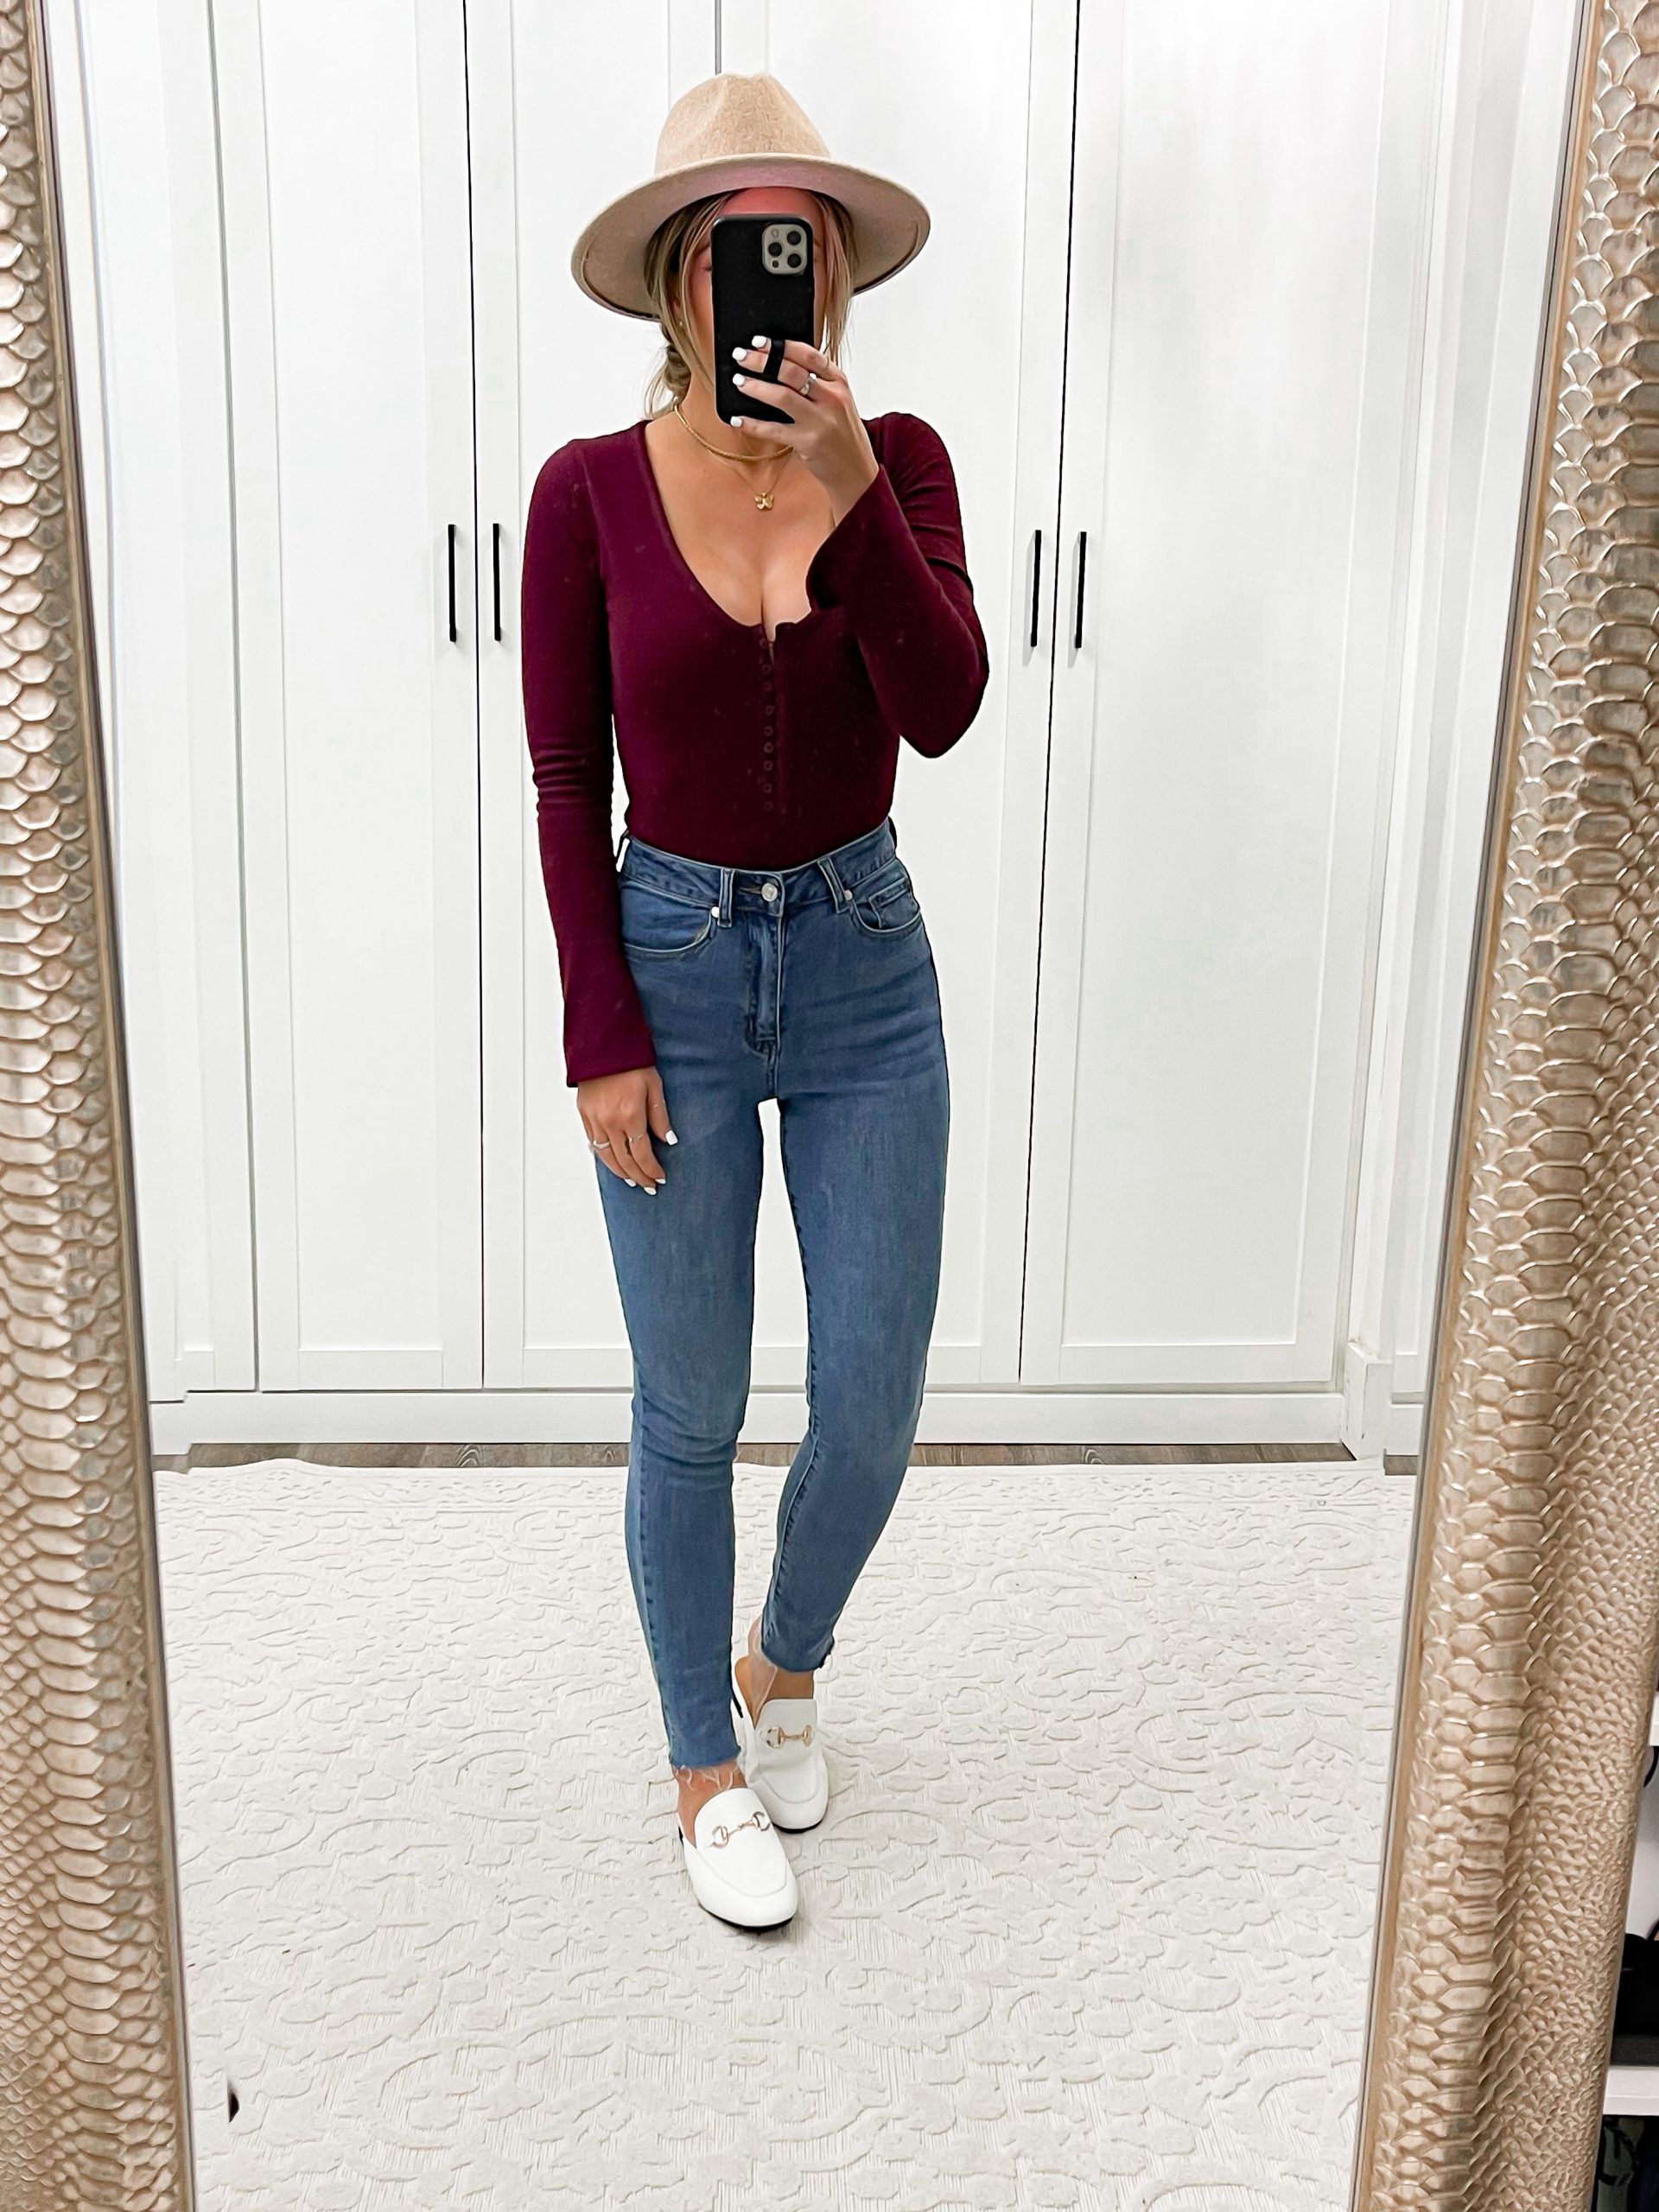 Laura Beverlin Forever 21 spring outfit ideas 0